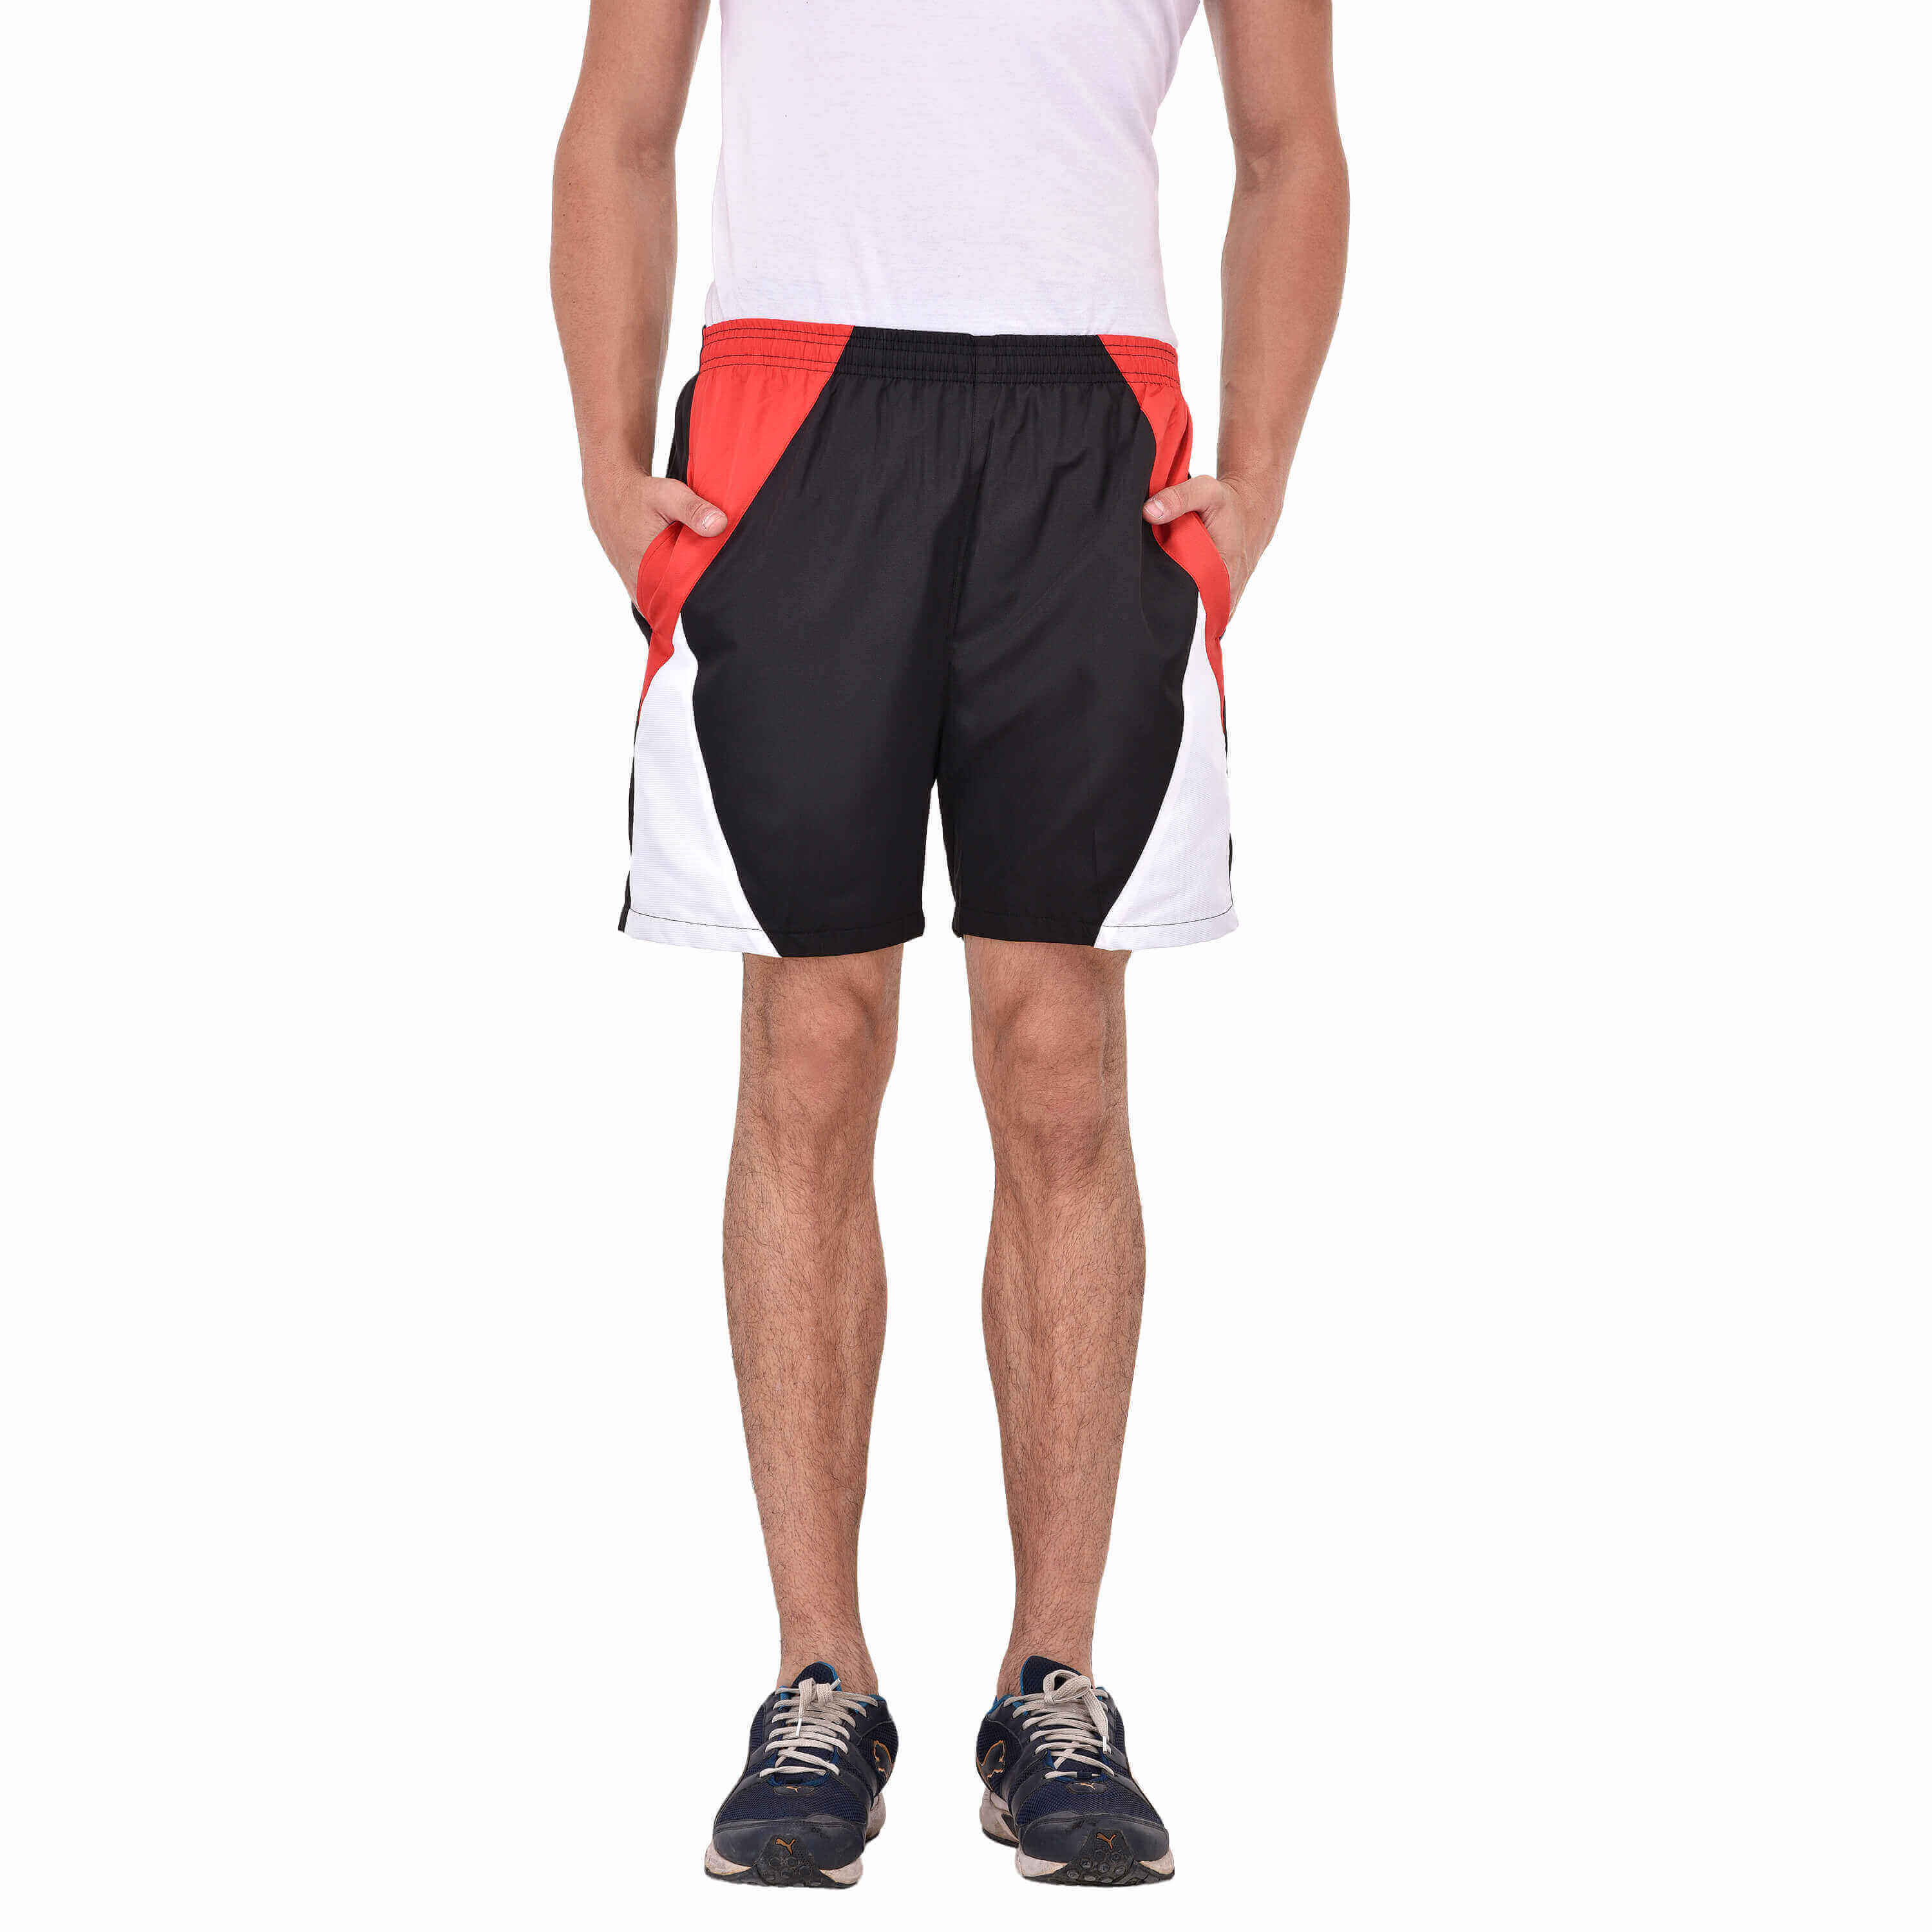 Soccer Shorts Manufacturers in Thailand